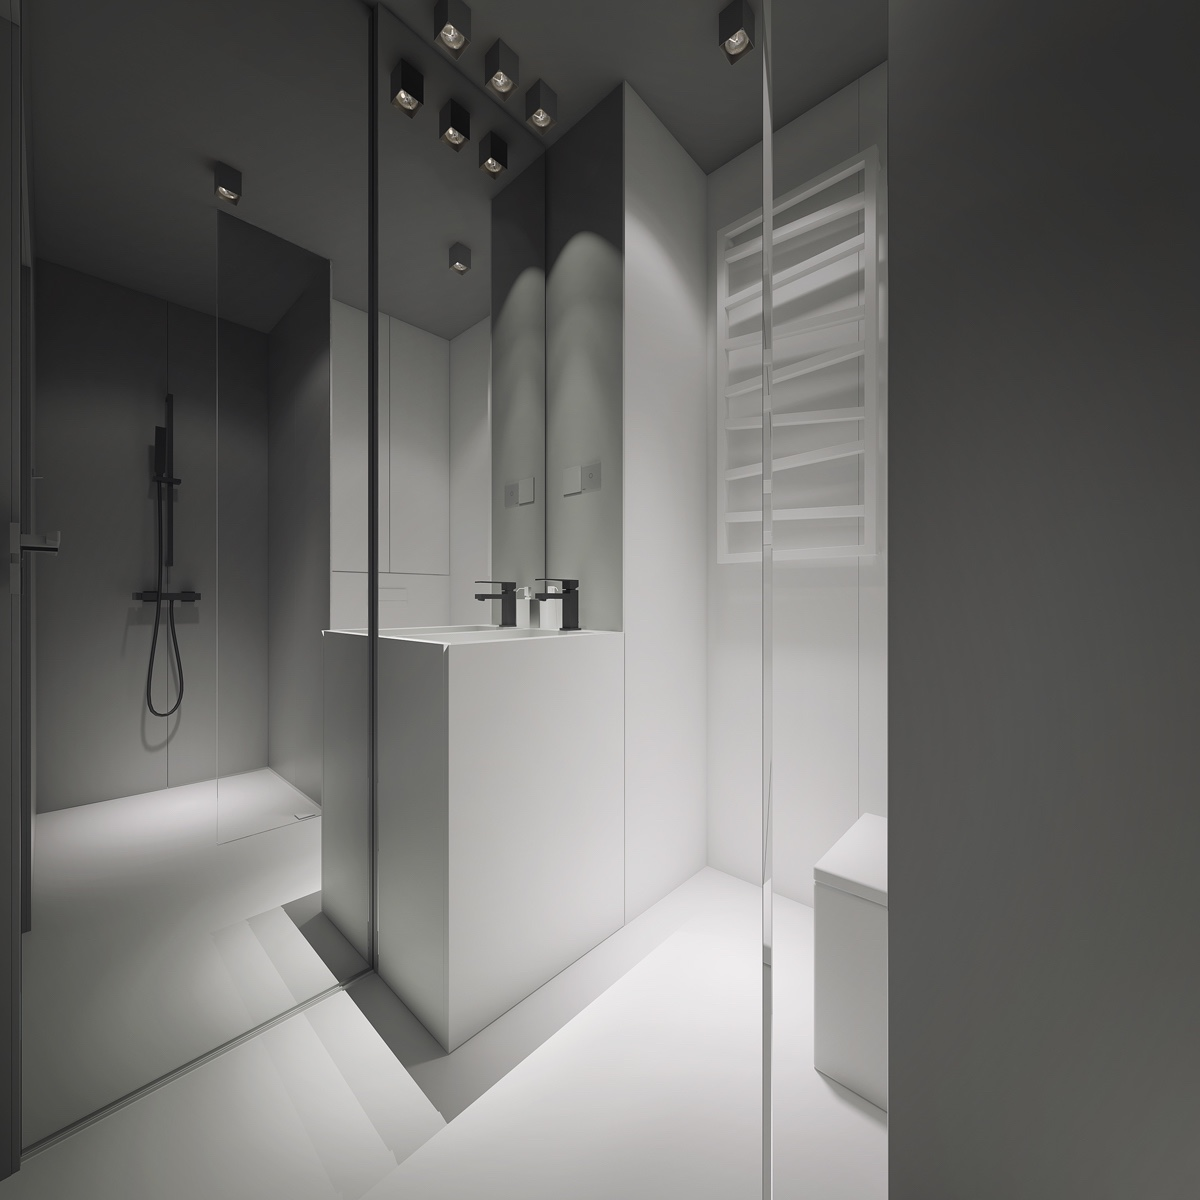 The ensuite is also made roomy by minimalism. Using floor-length mirrors and white block porcelain, the space creates room within a feeling of calm. Simple chrome fixtures and all-grey walling give the bathroom depth. Simple features in the black shower head and zig-zag heated towel rail add sophistication without clutter.